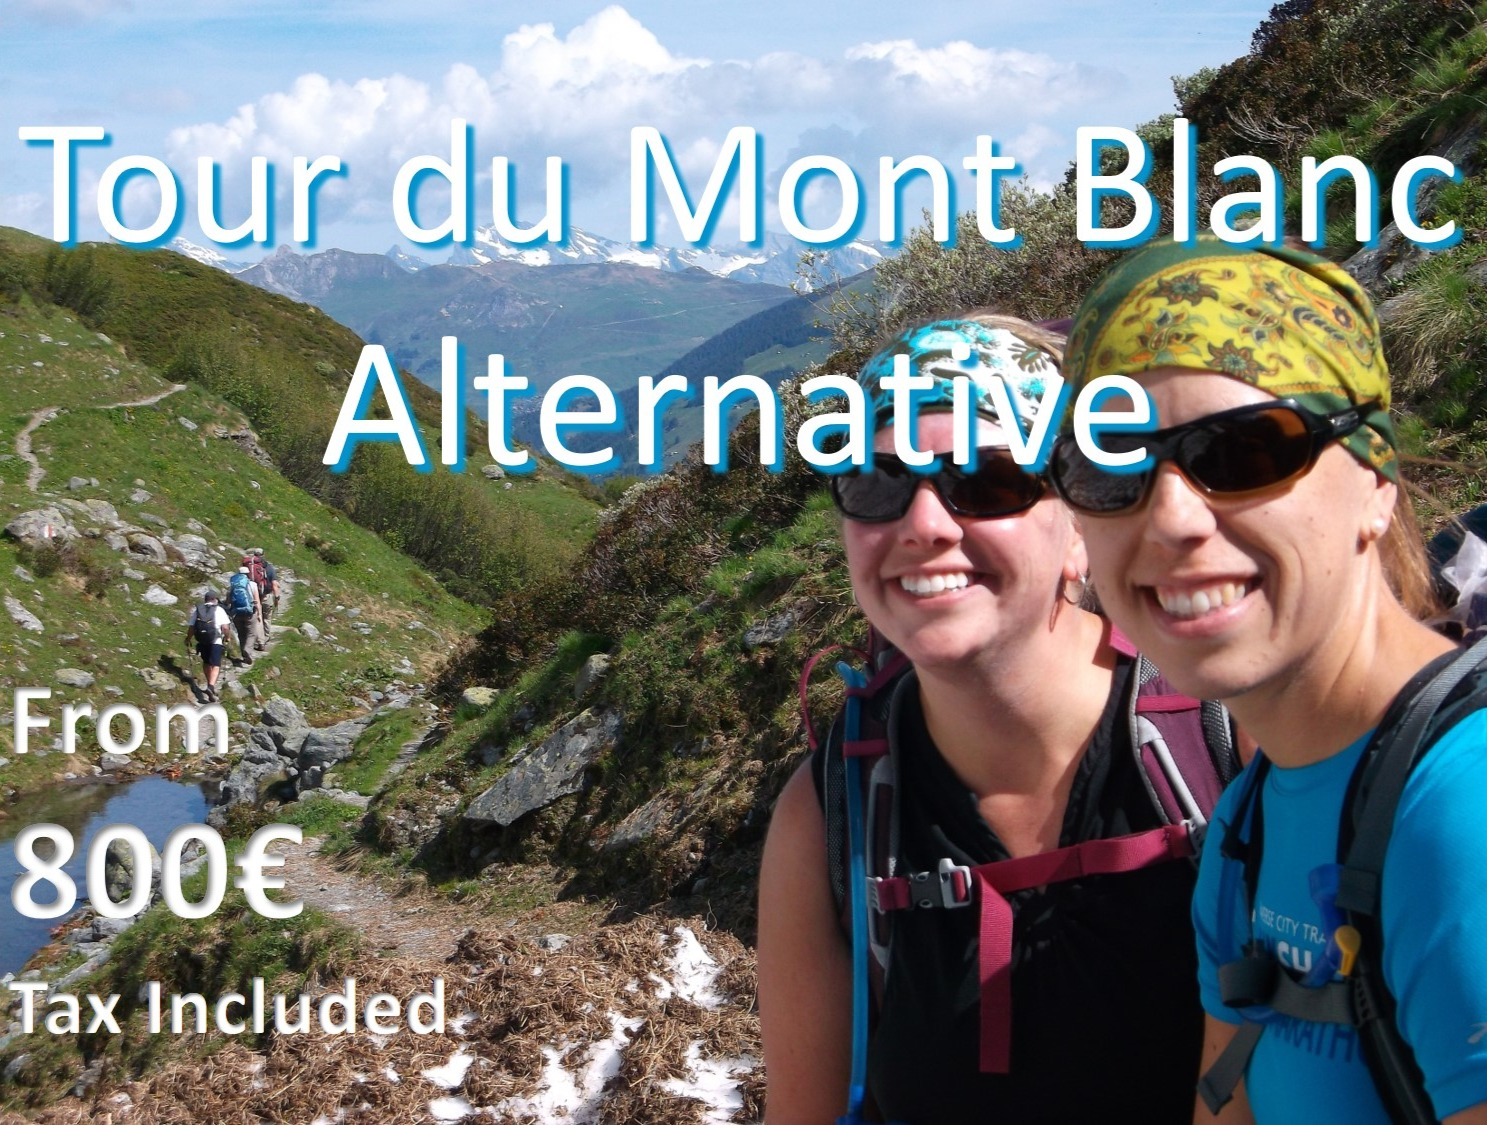 Tour du Mont Blanc Alternative